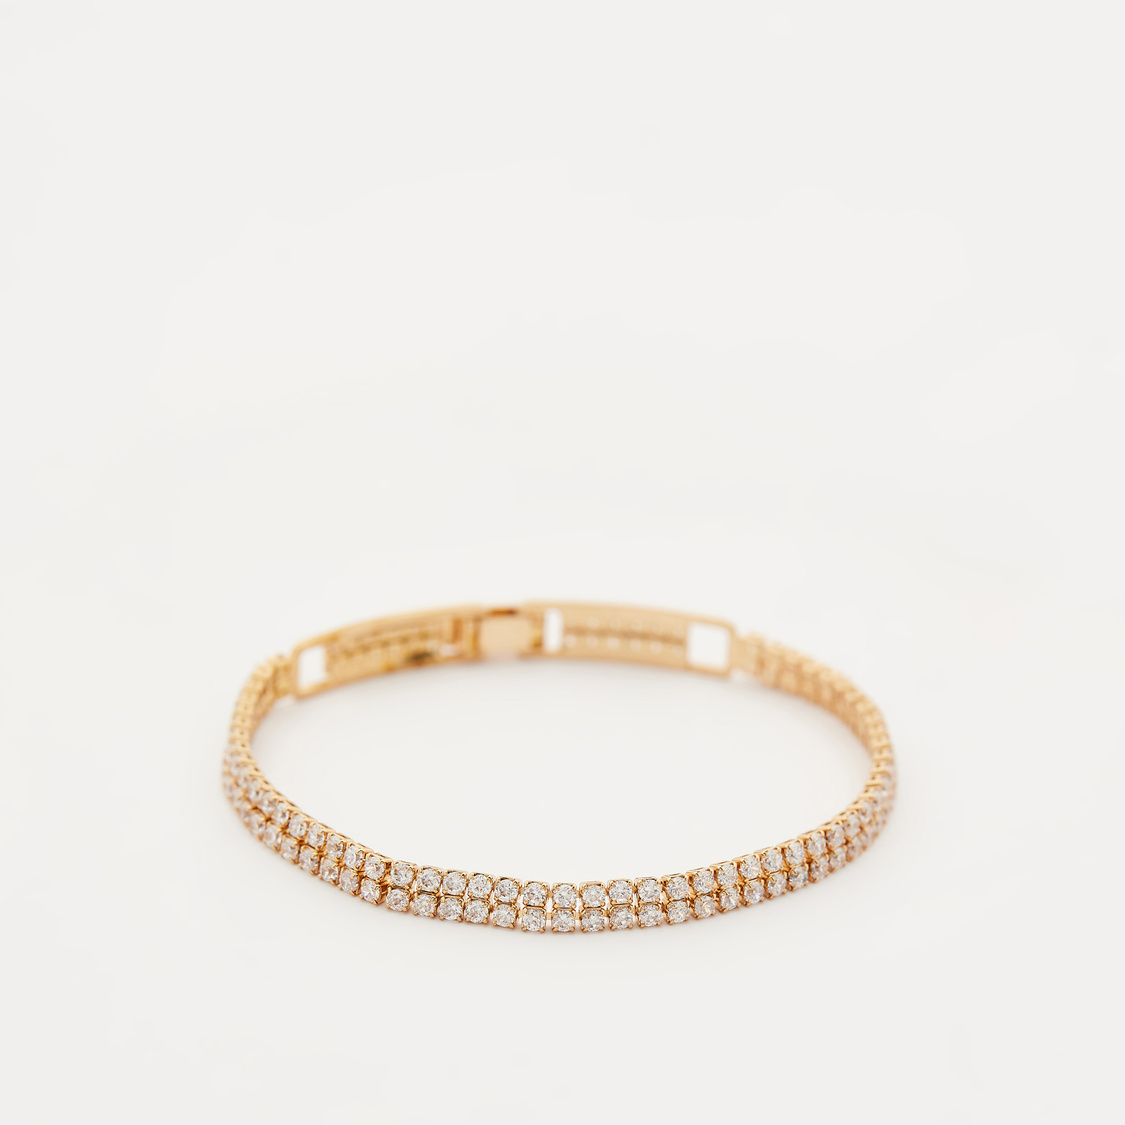 Studded Bracelet with Fold Over Closure